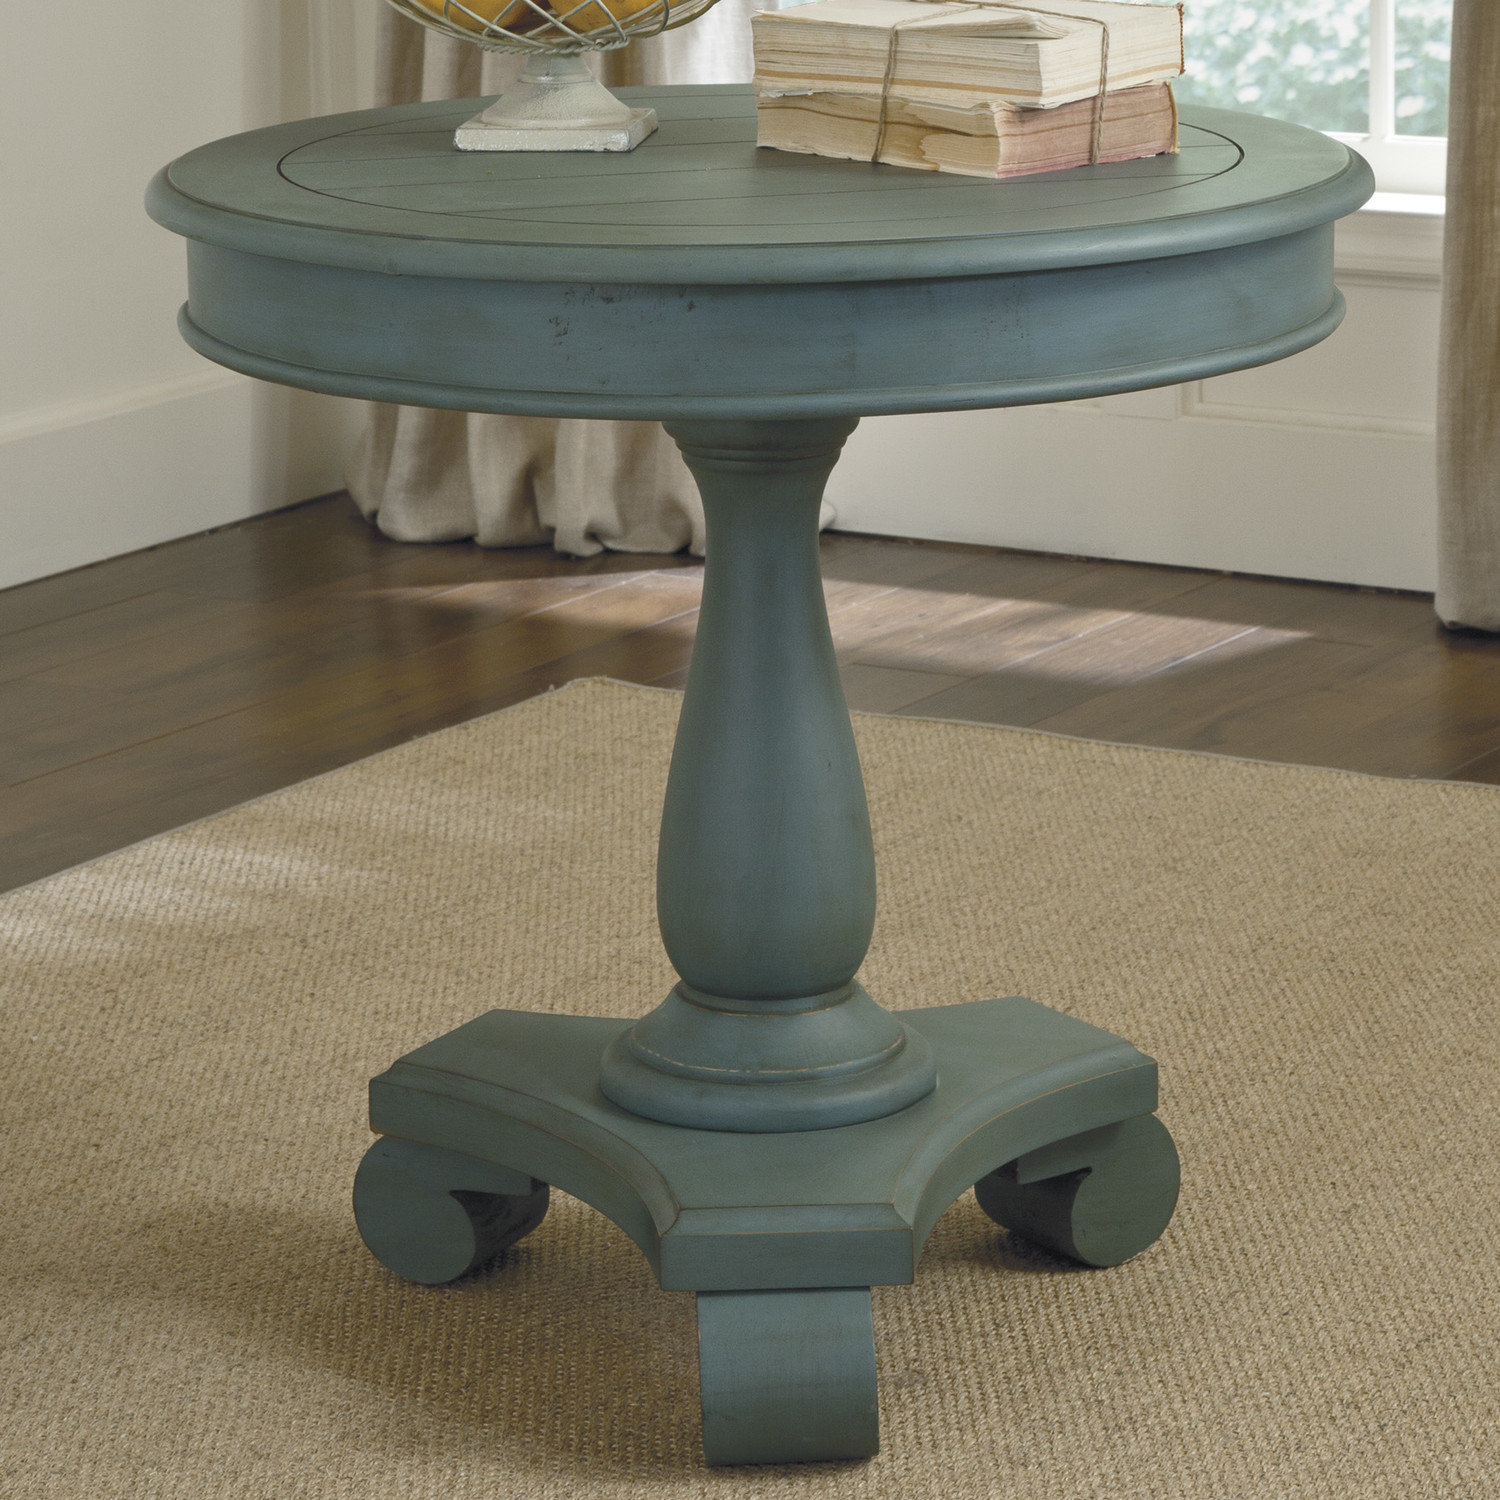 stackable coffee table the outrageous beautiful teal round end distressed tables ideas ture white house design how paint and cat litter with casters ready made legs threshold